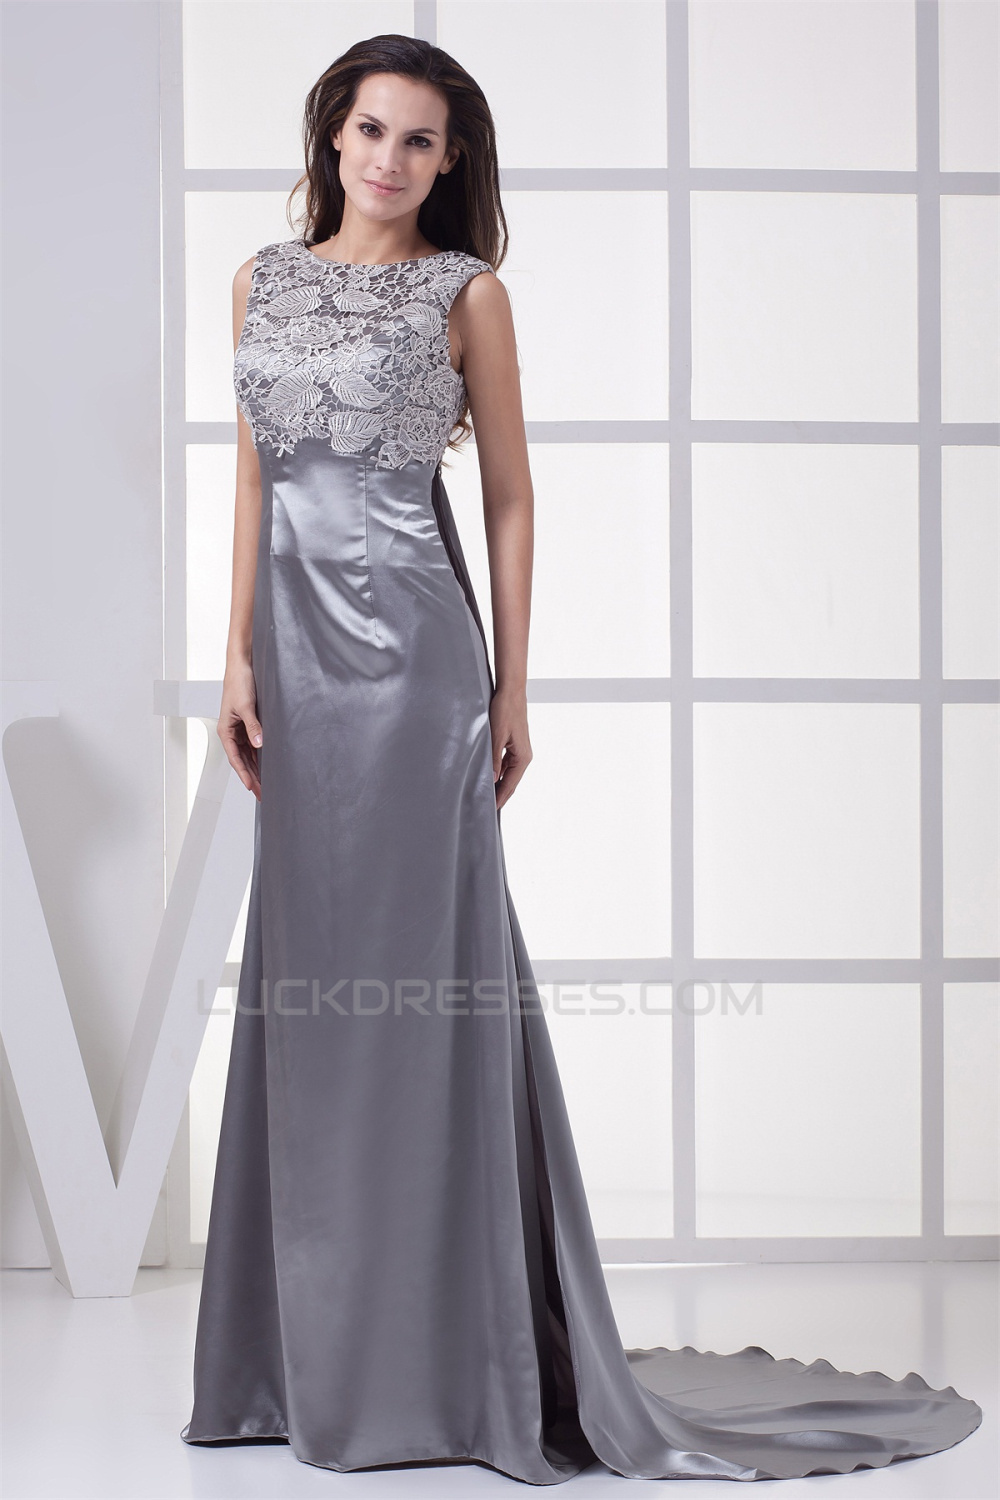 Elegant Lace Silk Like Satin Long Silver Mother Of The